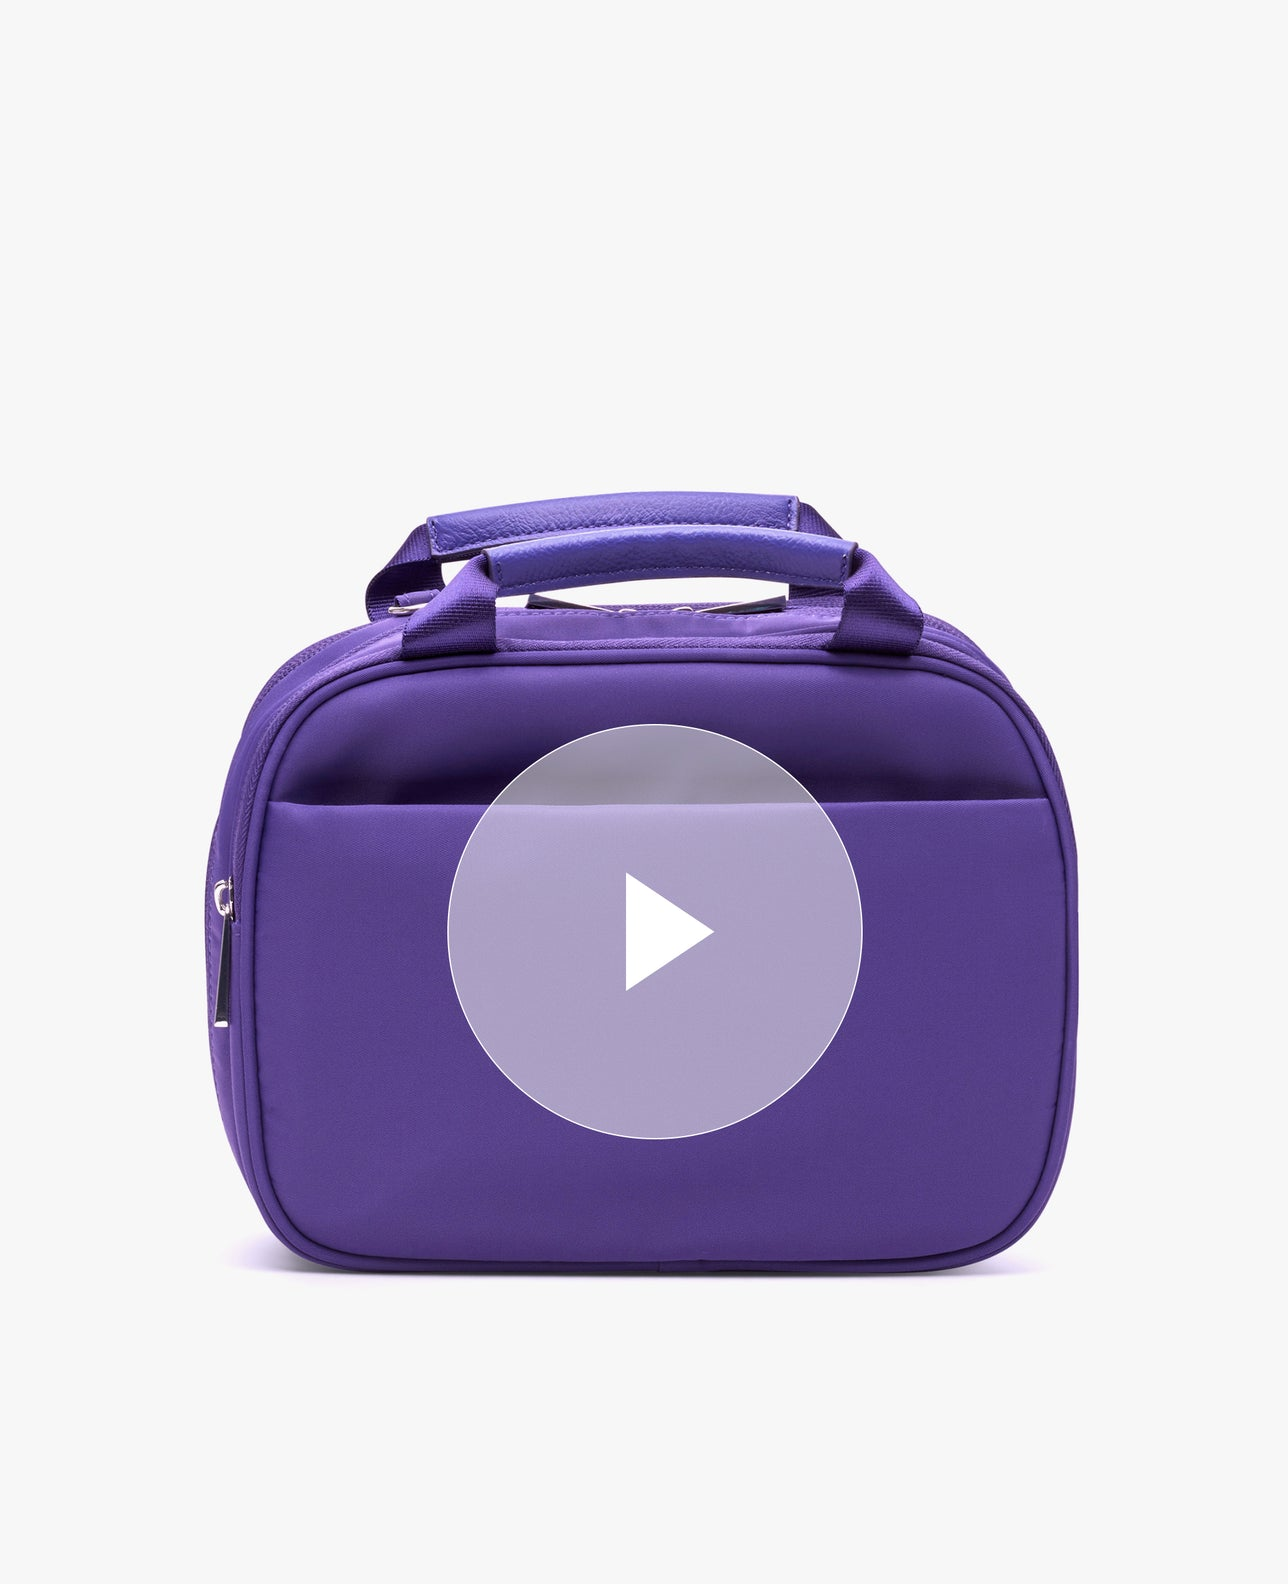 color:Purple Nylon  https://player.vimeo.com/video/526392205